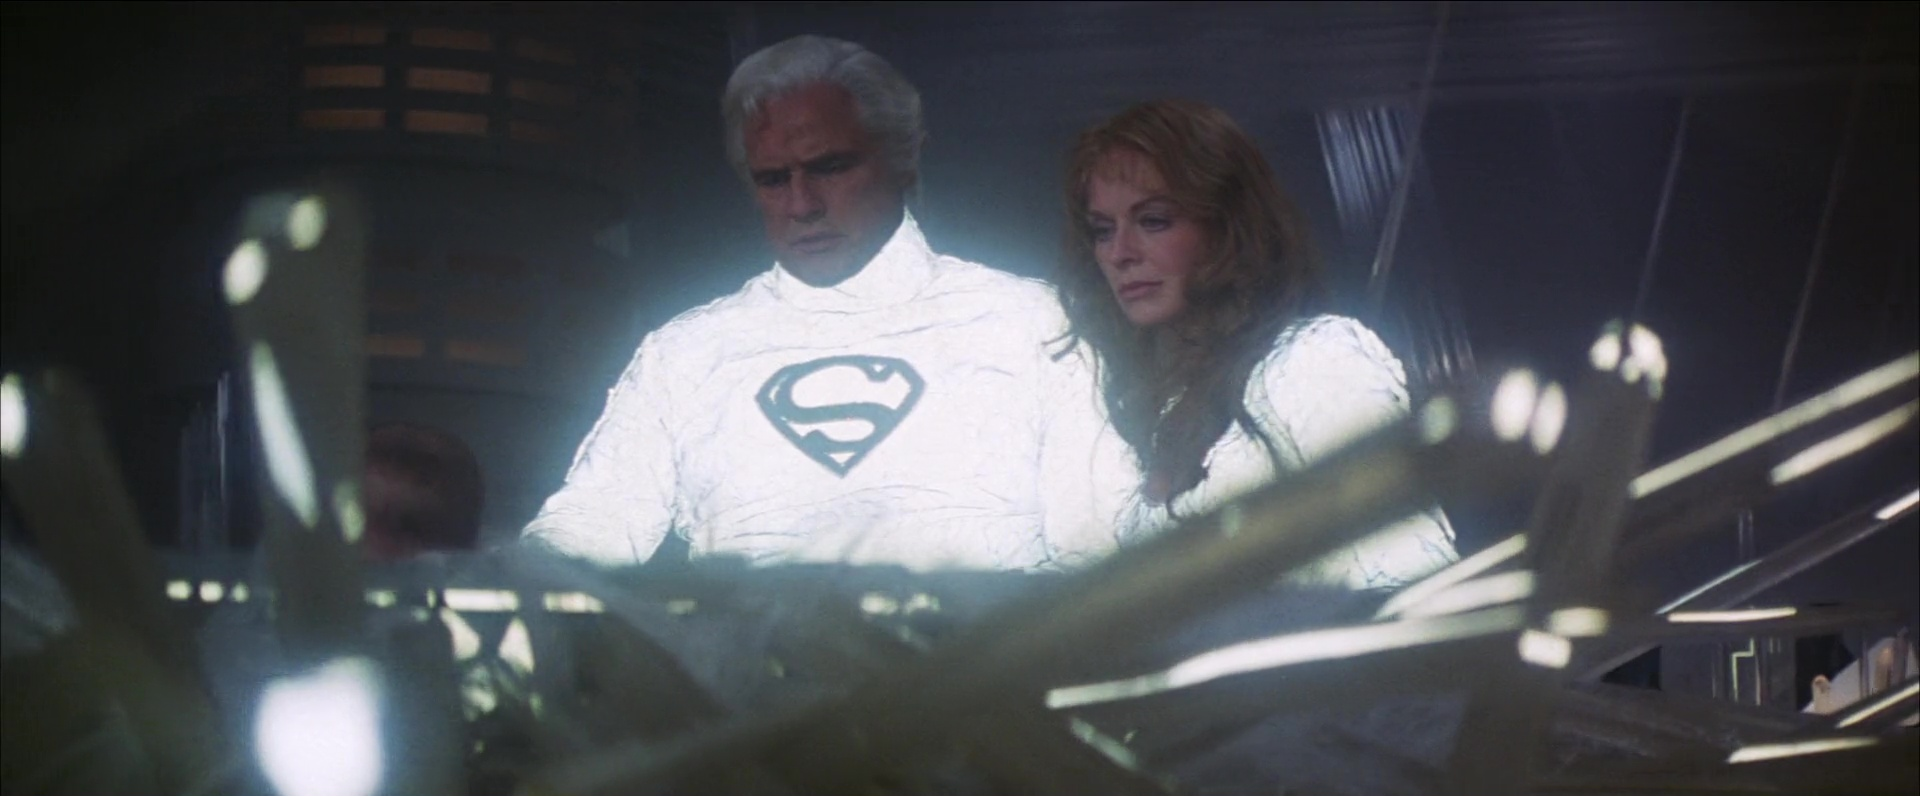 File:Superman Goodbye.jpg